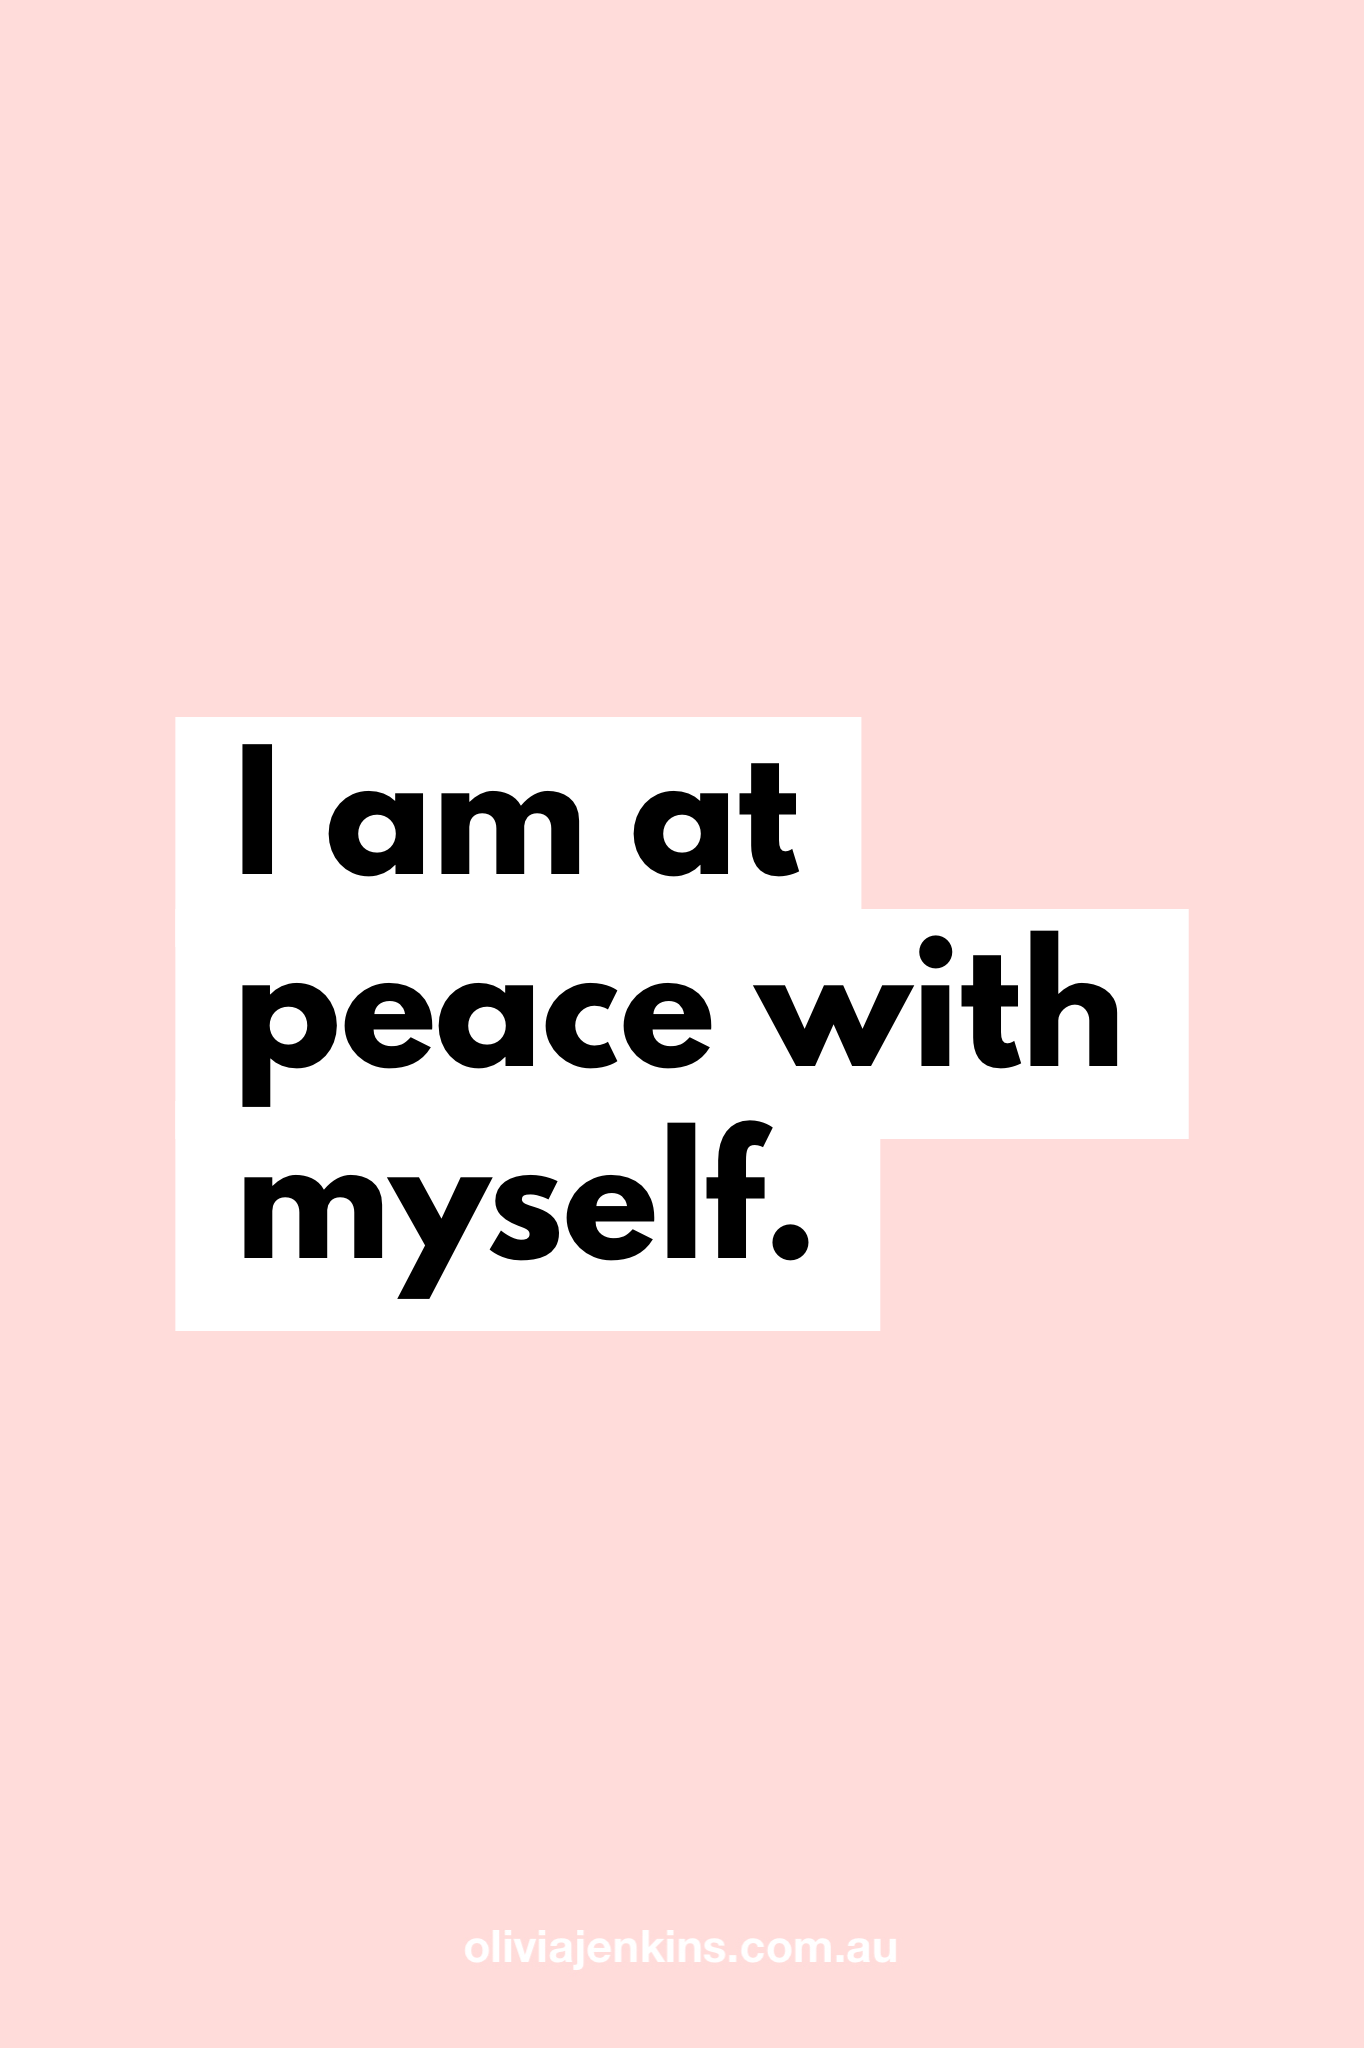 I am at peace with myself. 💖